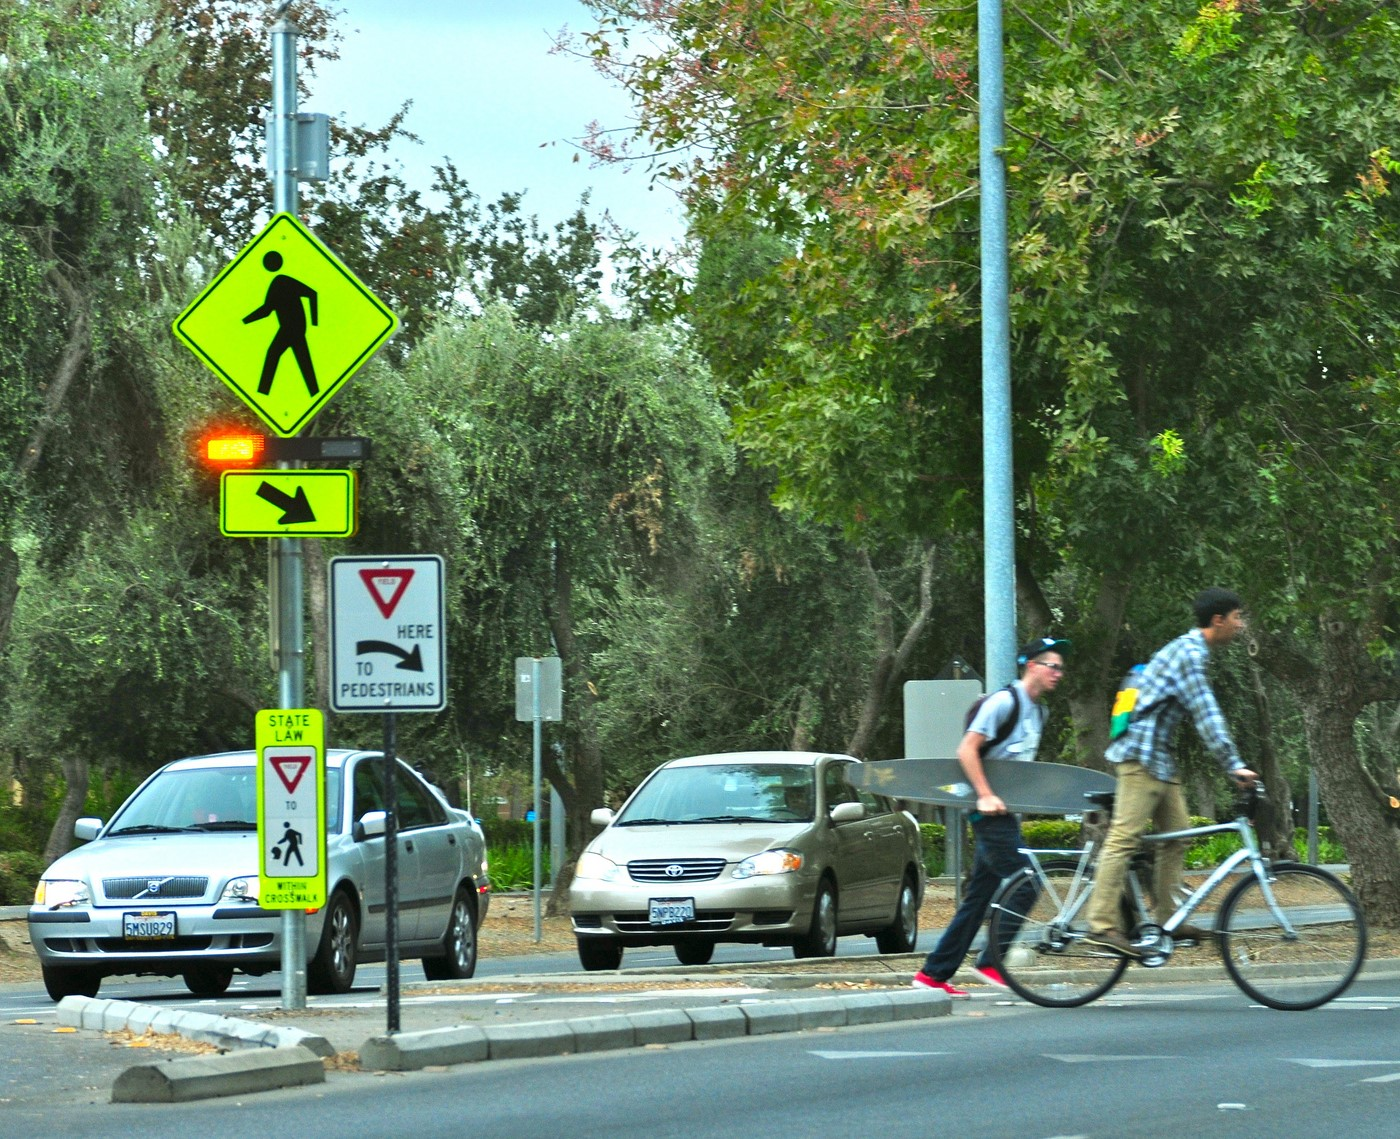 Rectangular Rapid Flashing Beacon example from Davis, CA. Photo by Lara Justine via Flickr